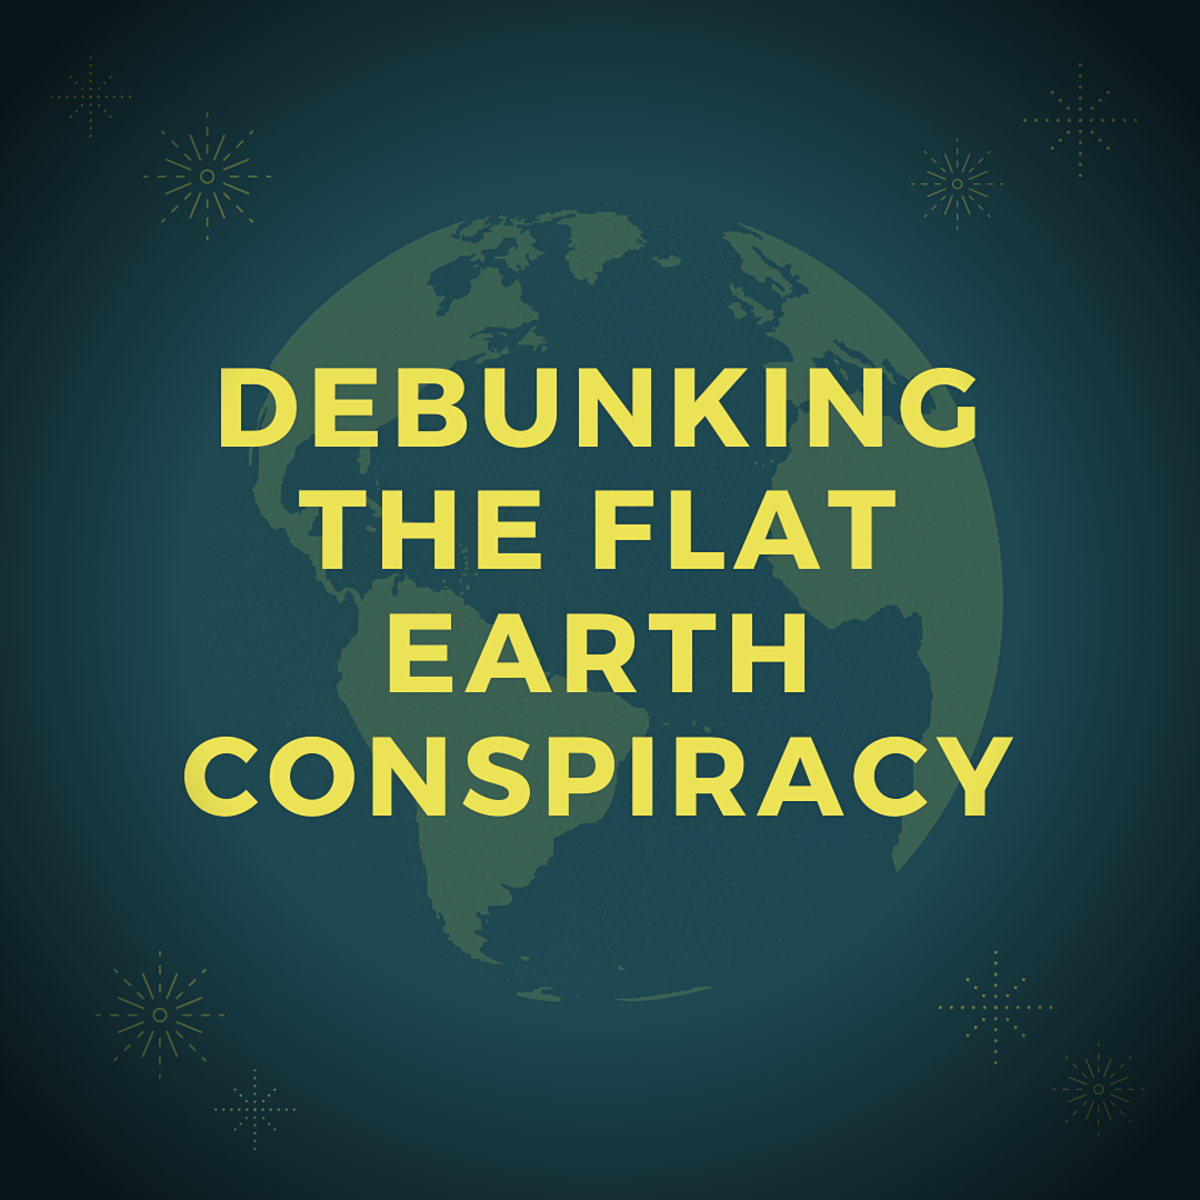 Read on to learn some easy arguments you can use to convince people that the Earth is spherical.